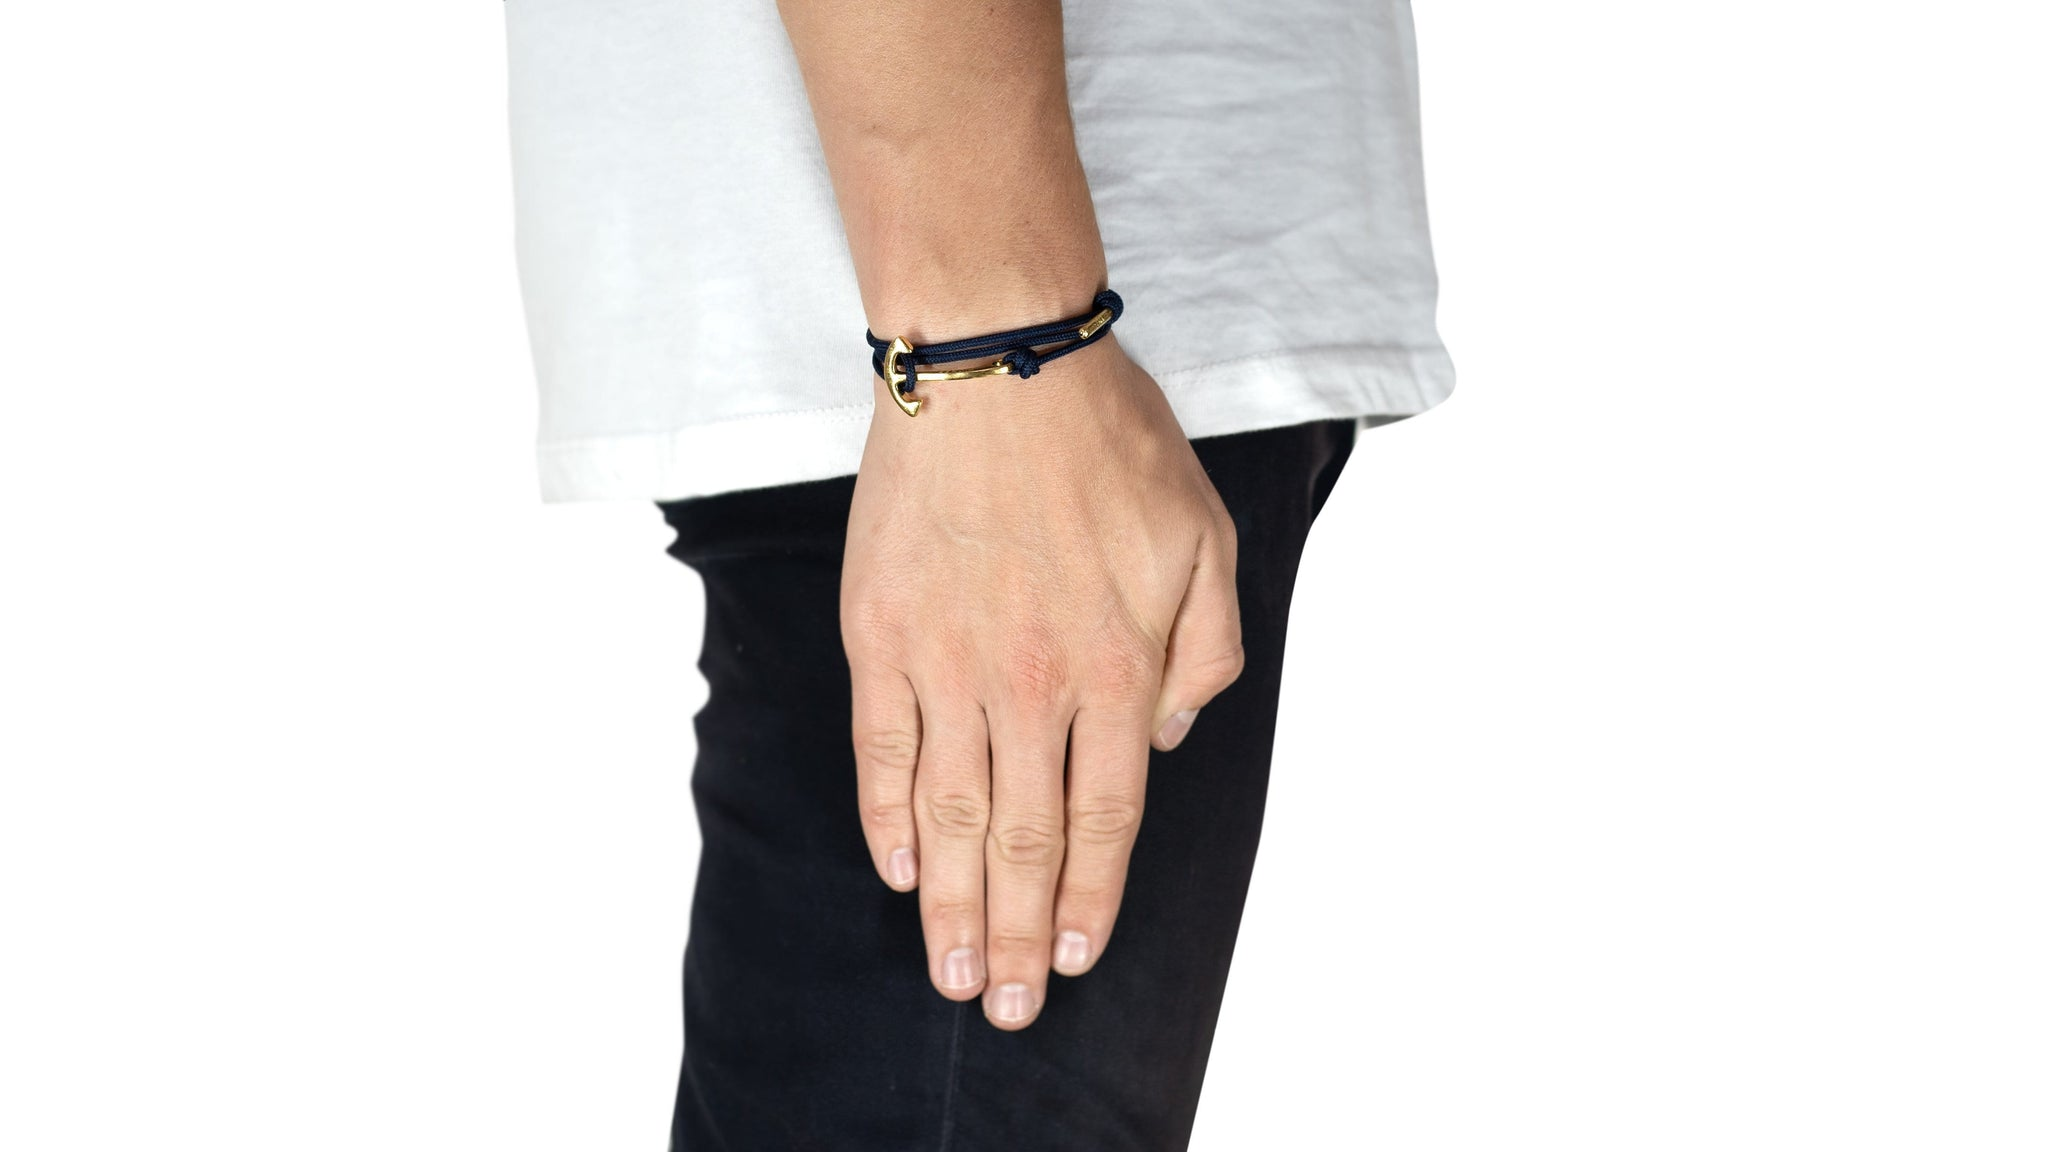 Adjustable anchor bracelet, gold-Wrist Wear-Stolen Riches / CA